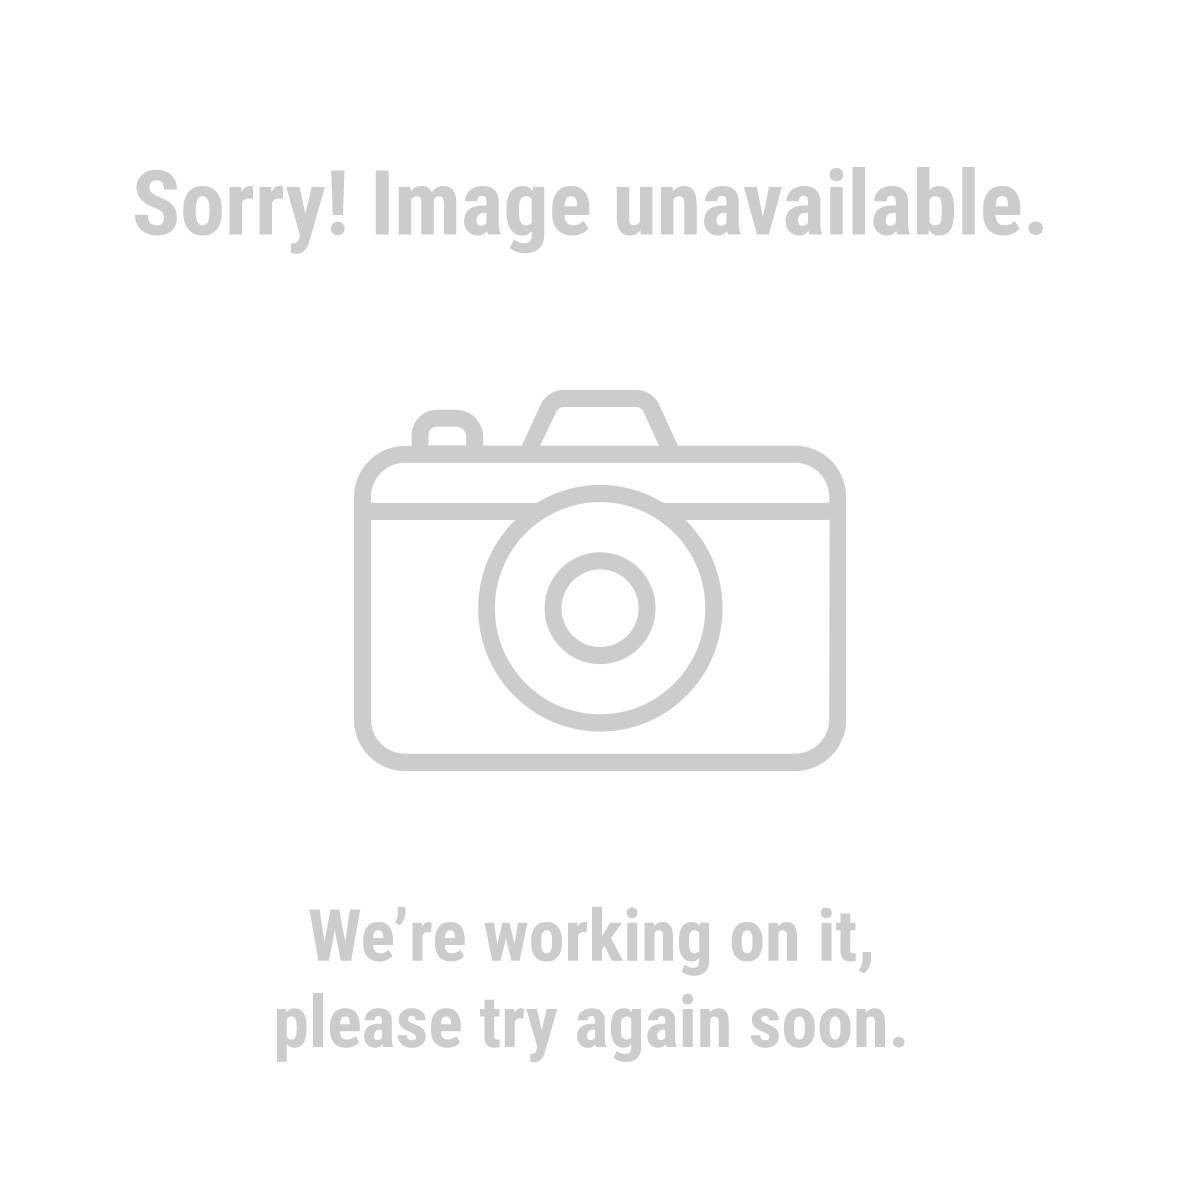 Pacific Hydrostar 69299 3/4 Horsepower Submersible Dirty Water Pump with Float Switch